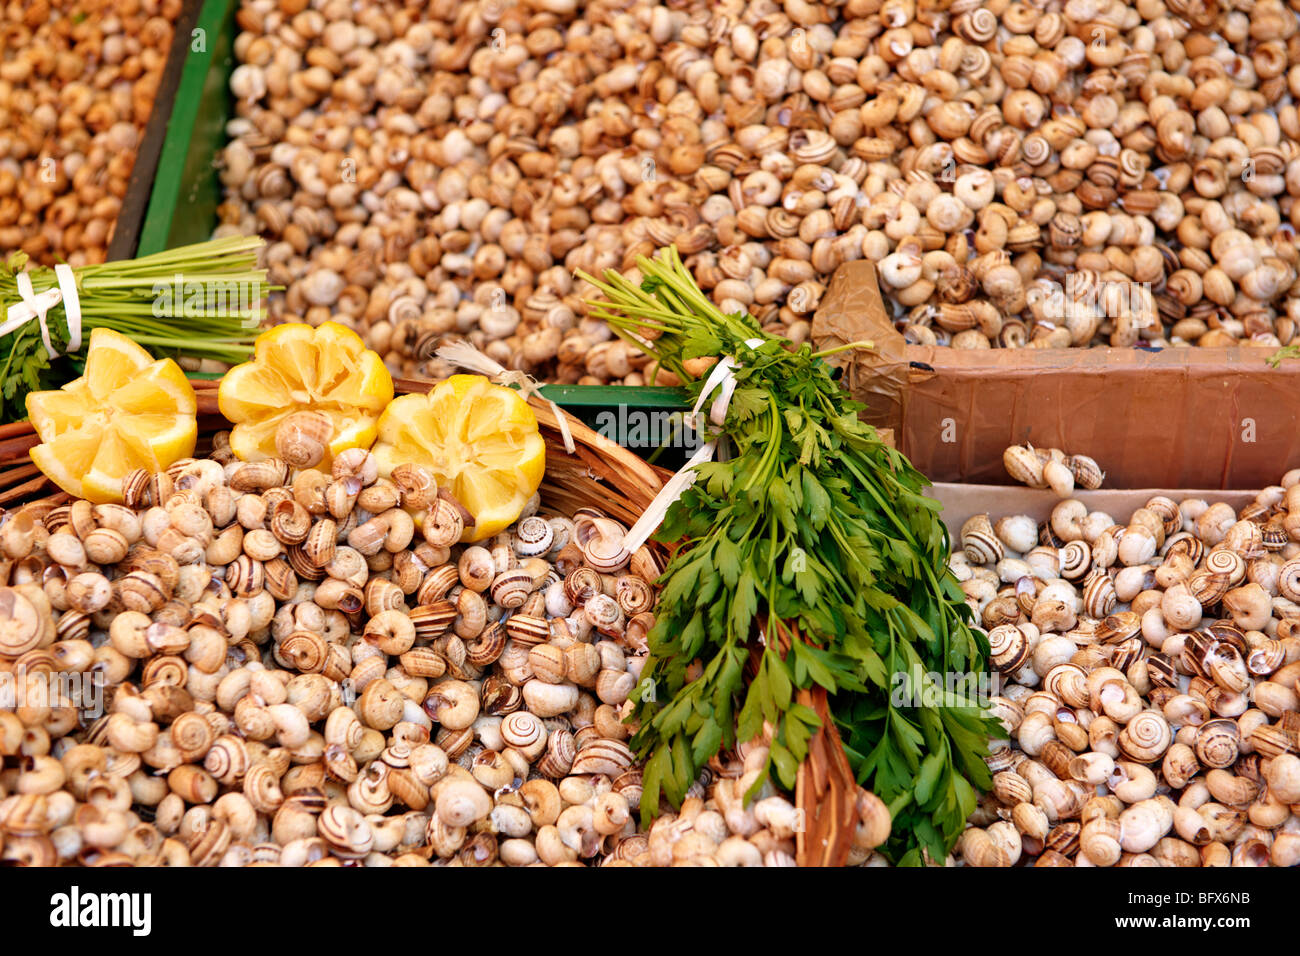 Live edible snails, Palermo food market, Sicily Stock Photo